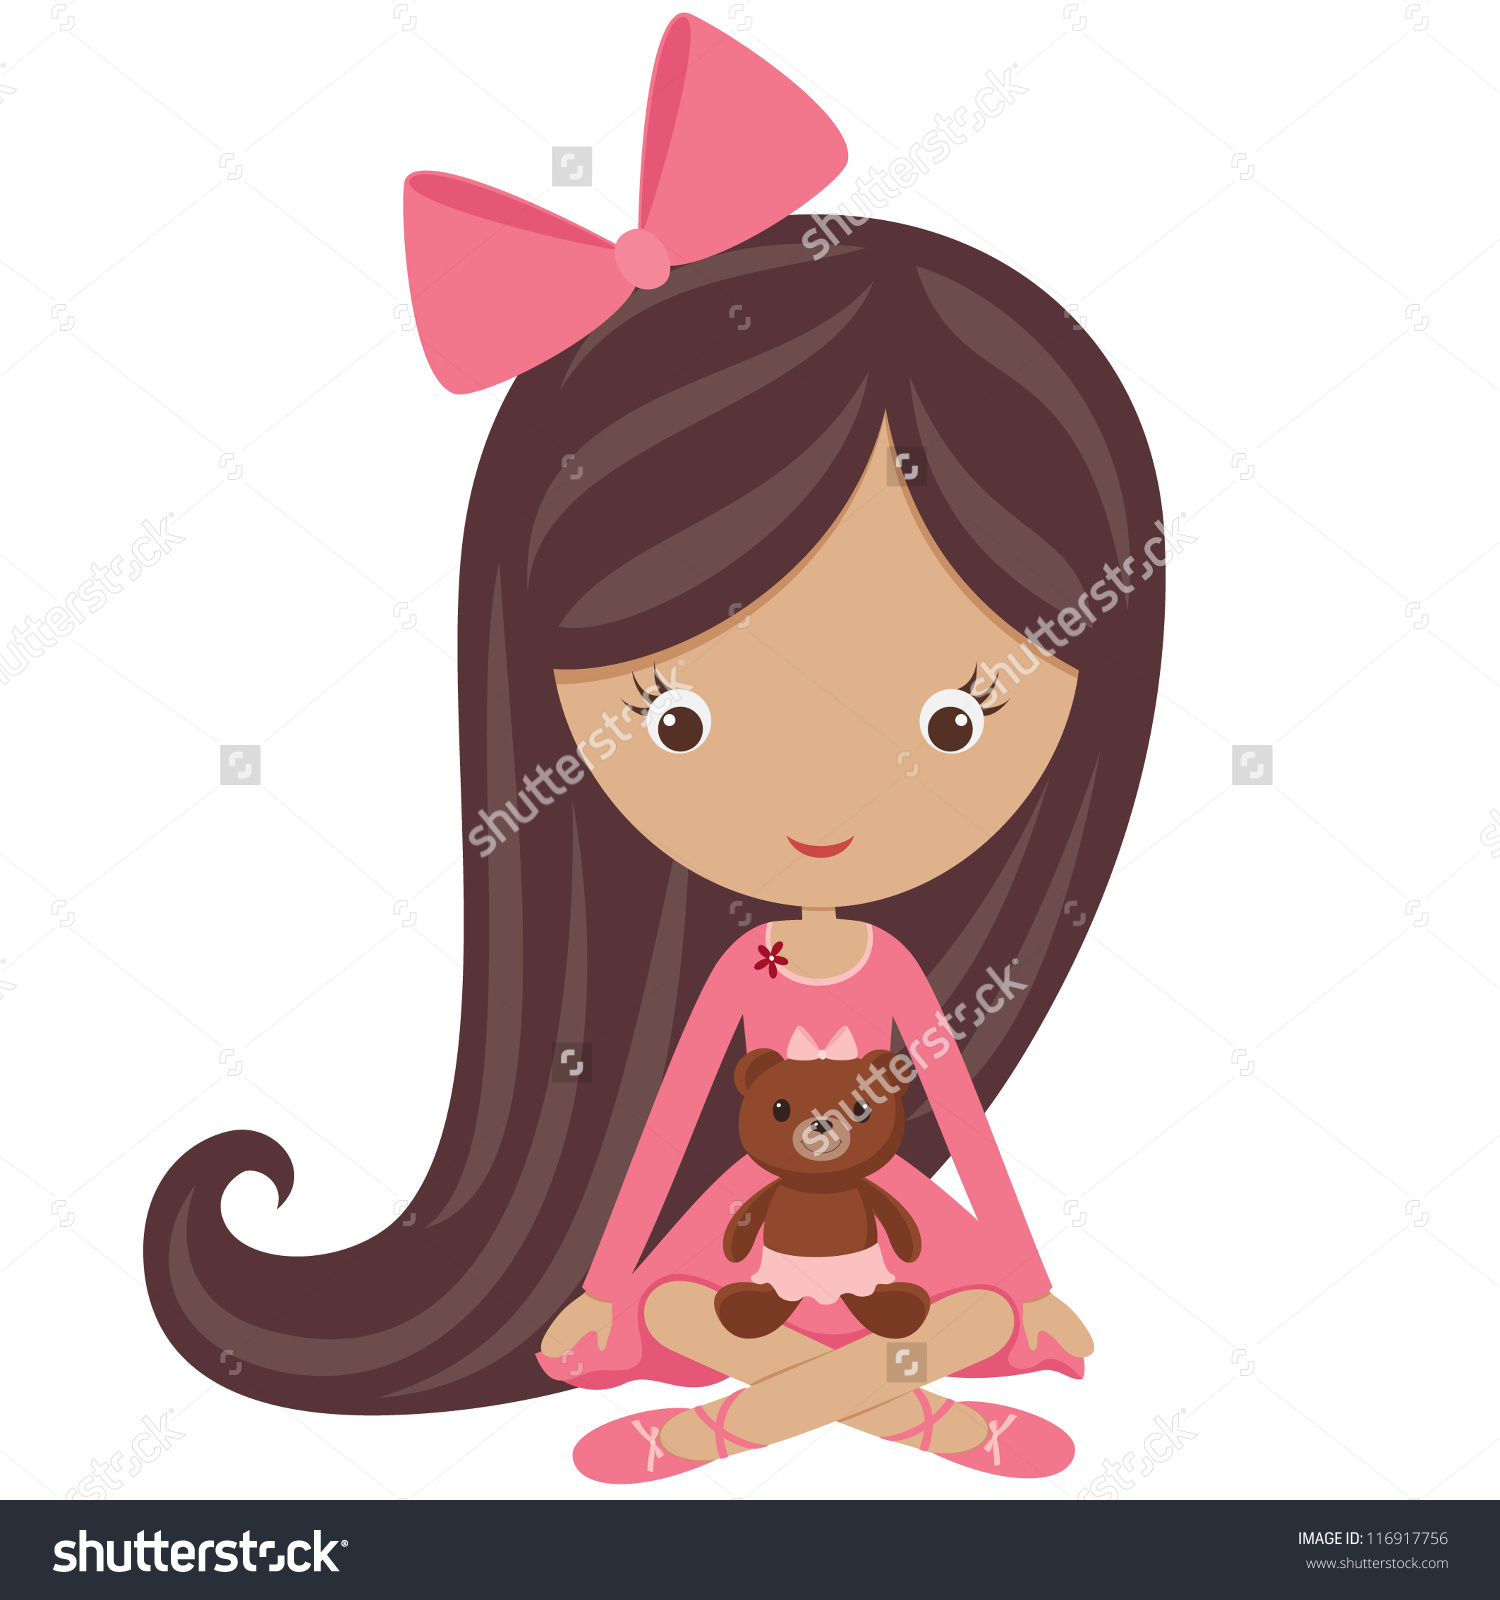 little brown haired girl clipart - Clipground